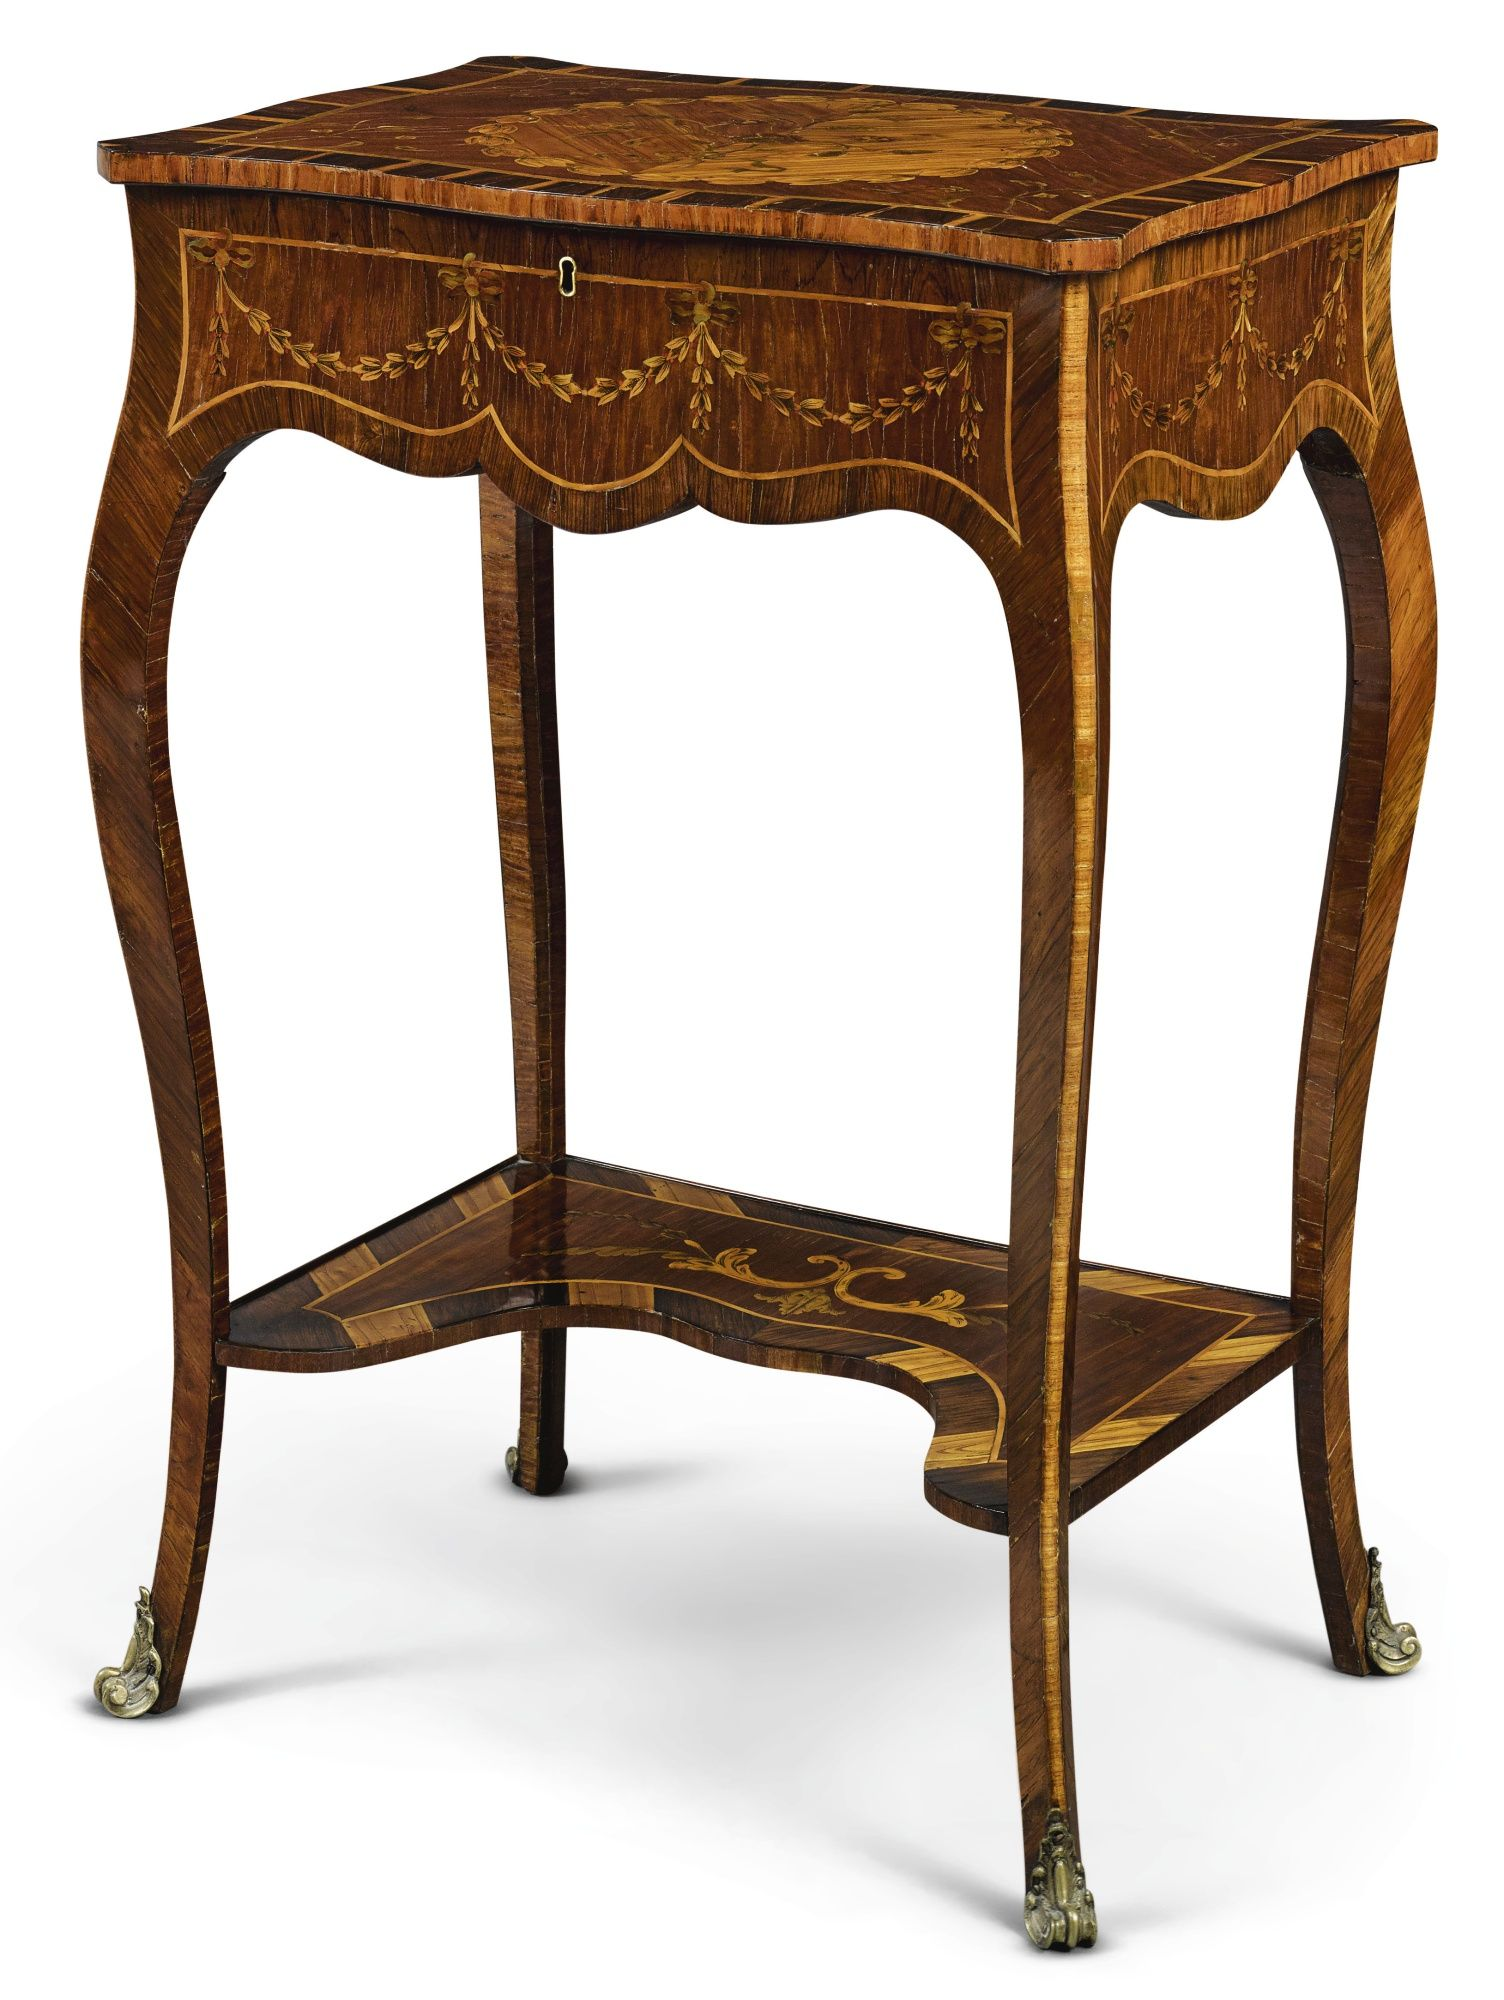 langlois furniture. C1760 A George III Rosewood, Satinwood, Fruitwood And Marquetry Work Table Attributed To Pierre Langlois Furniture